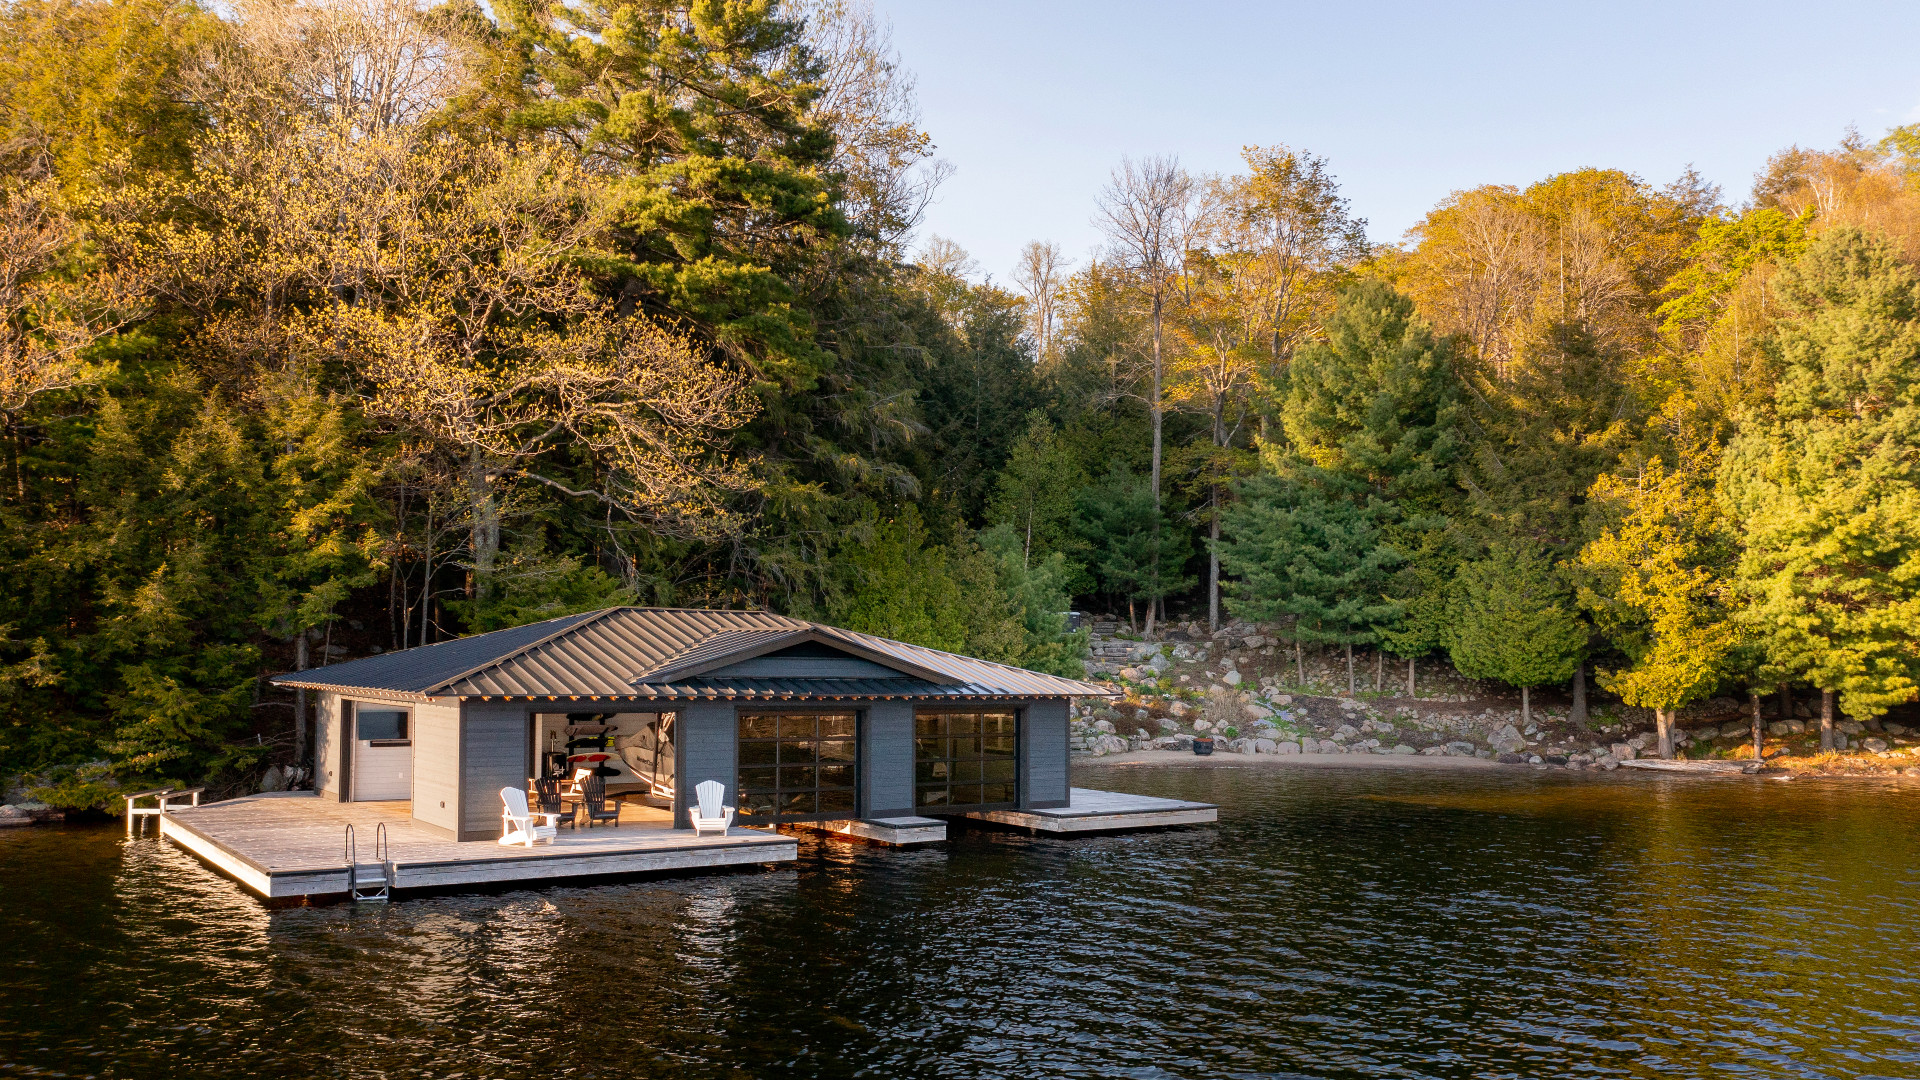 A wide view of the boathouse.